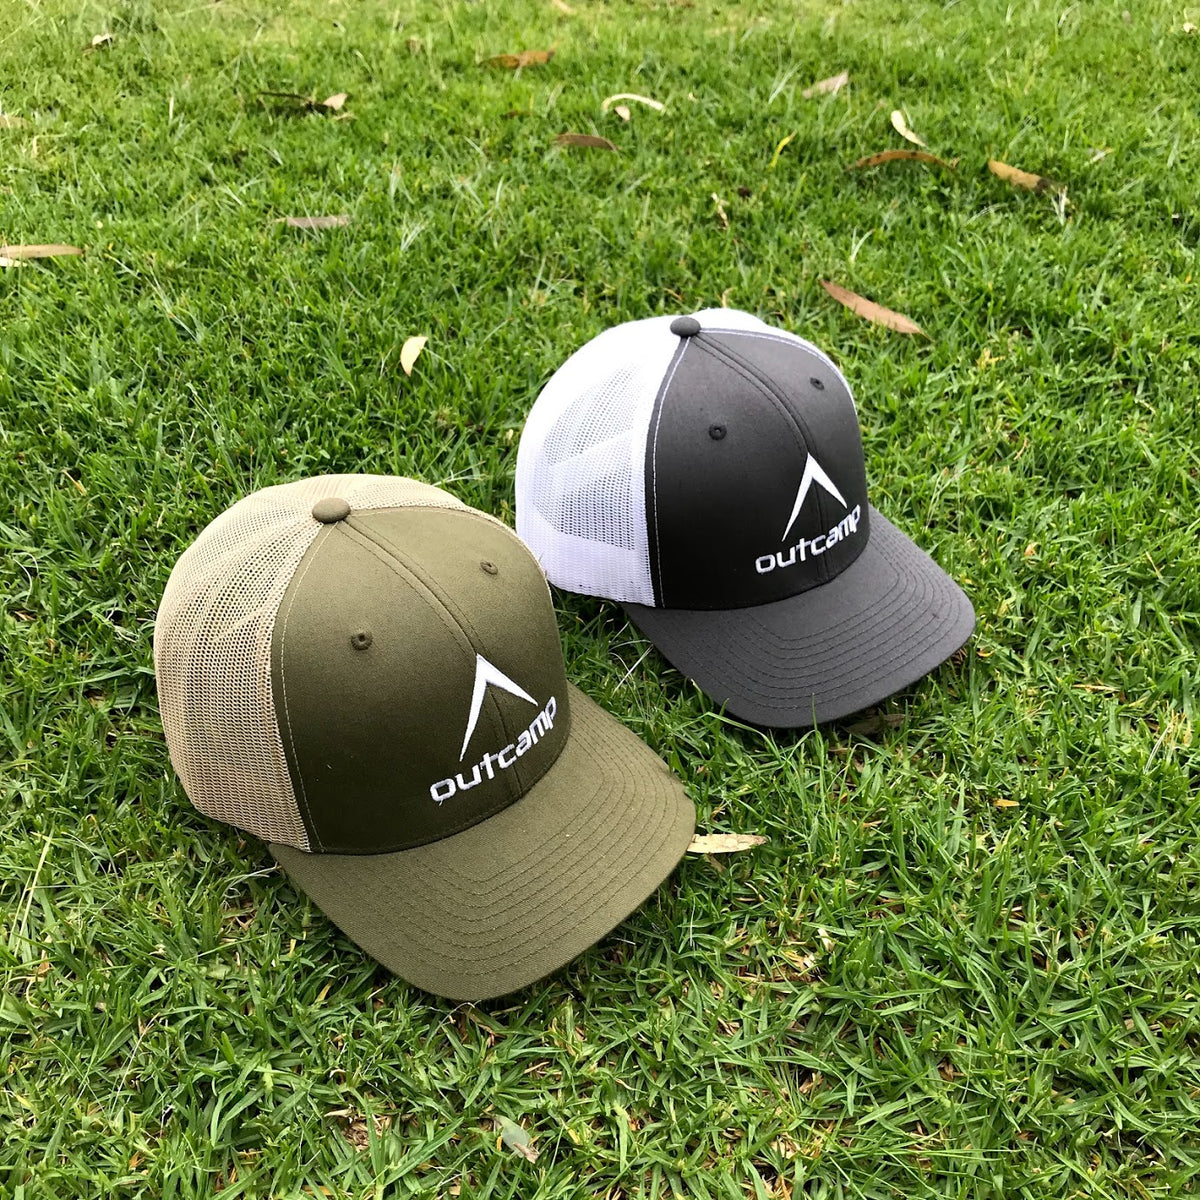 Outcamp hat